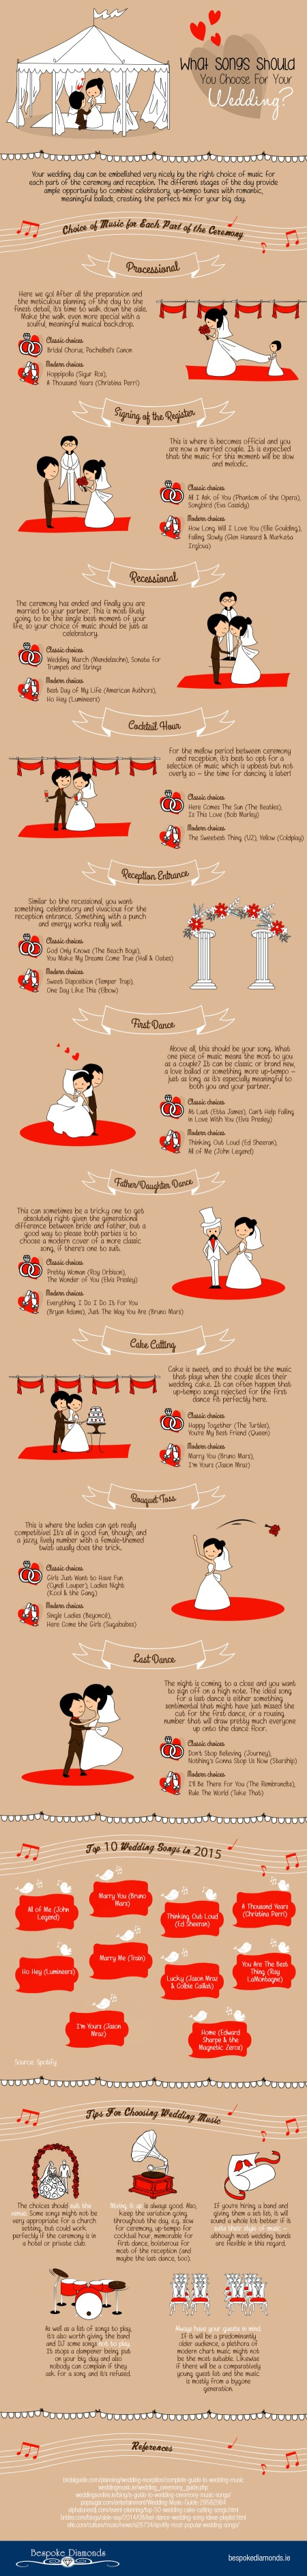 What-Songs-Should-You-Choose-For-Your-Wedding-Bespoke